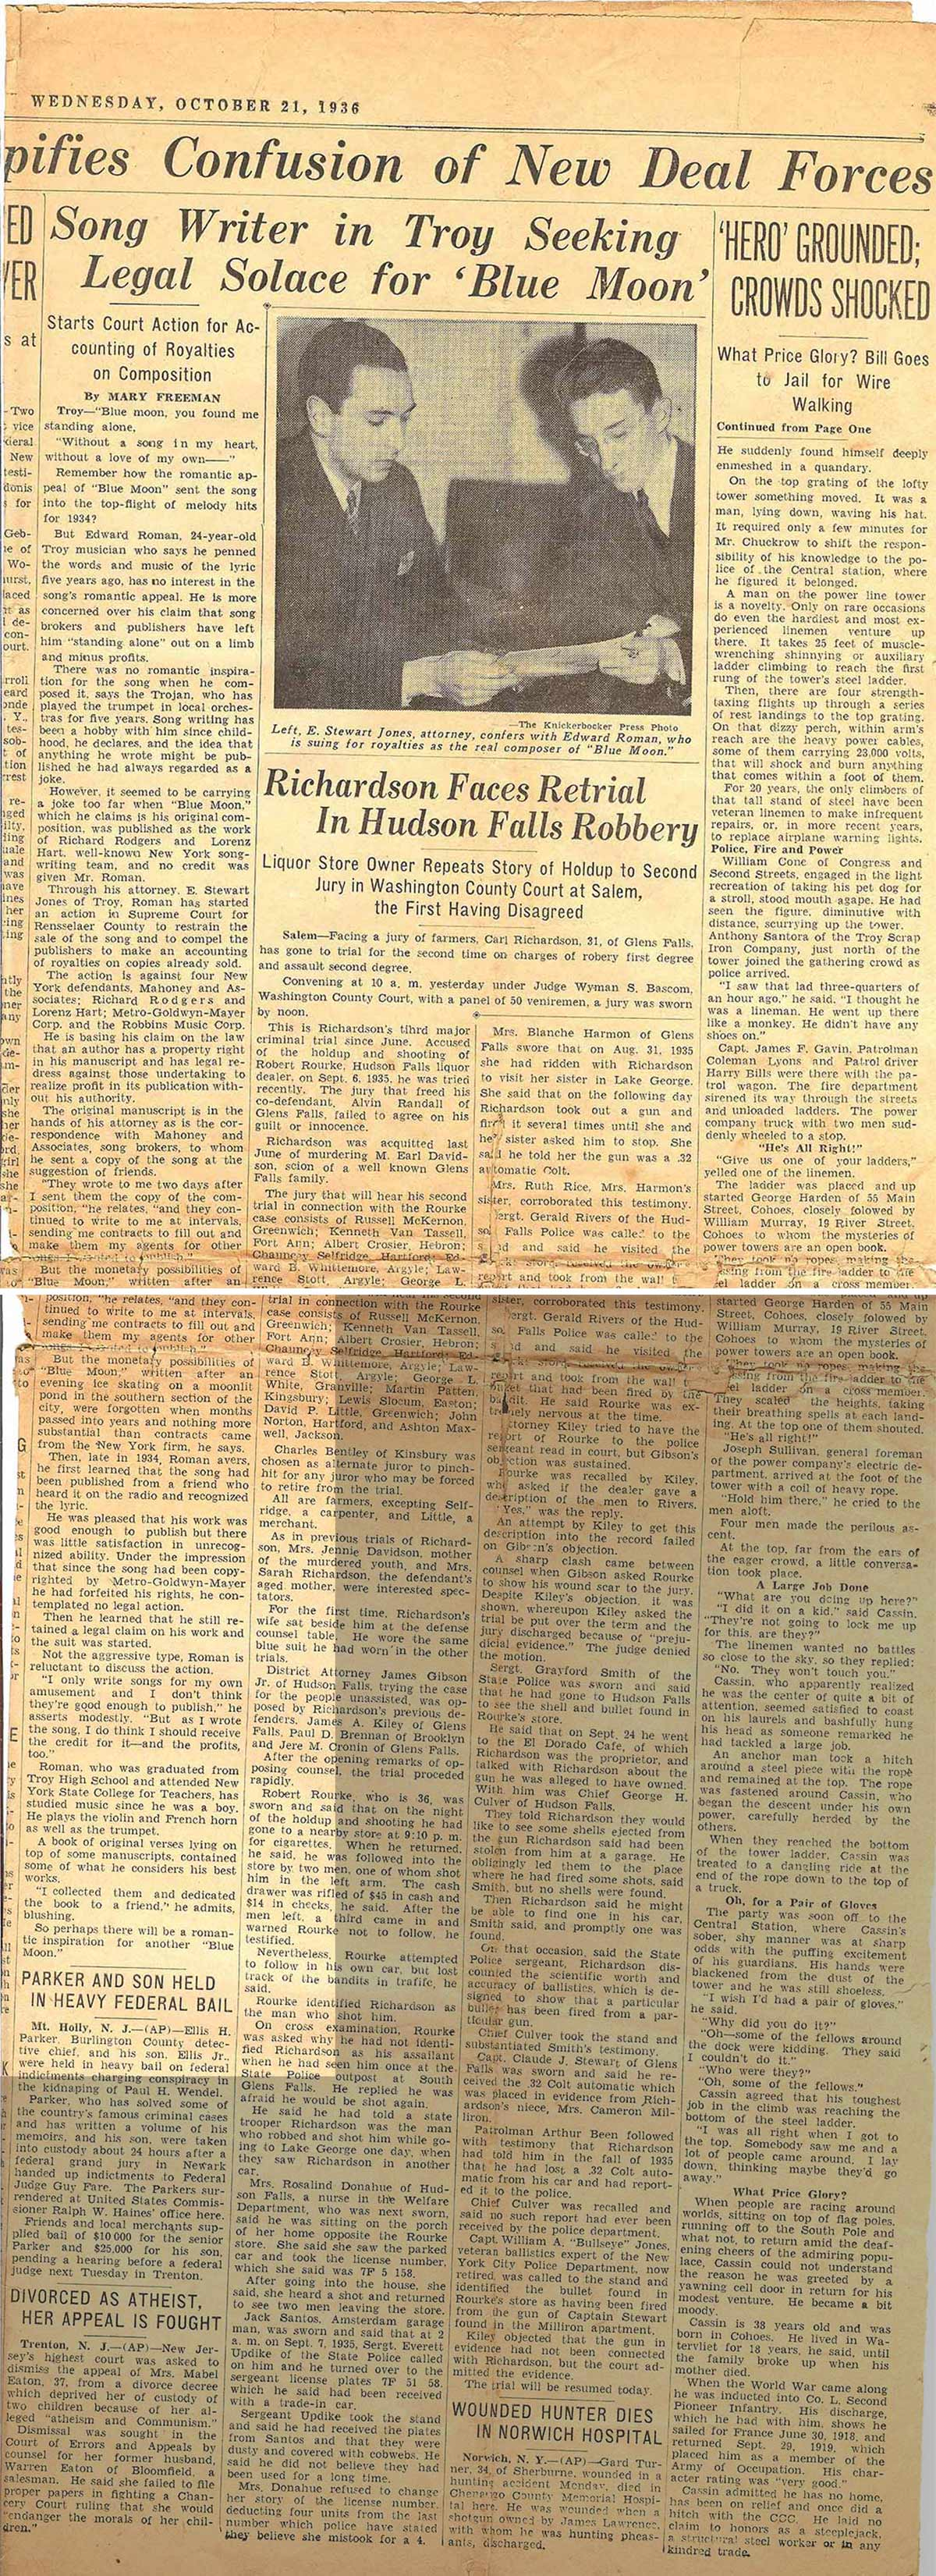 This is a copy of  a news article published on October 21, 1936 in the Knickerbocker News about a lawsuit brought forward by Edward W. Roman claiming copyright infringement by Richars Rodgers & Lorenz Hart for the song